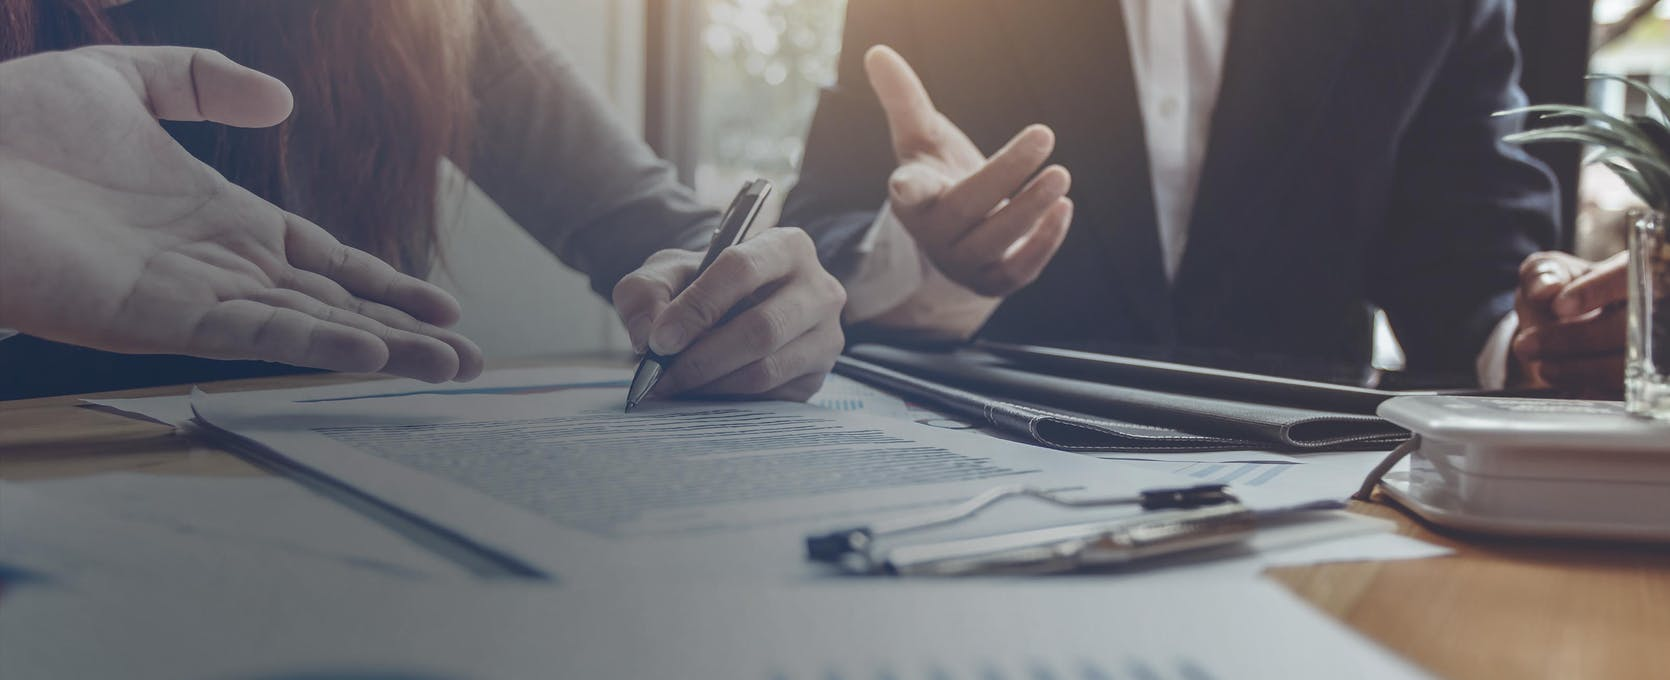 Business professionals review financial statement audits